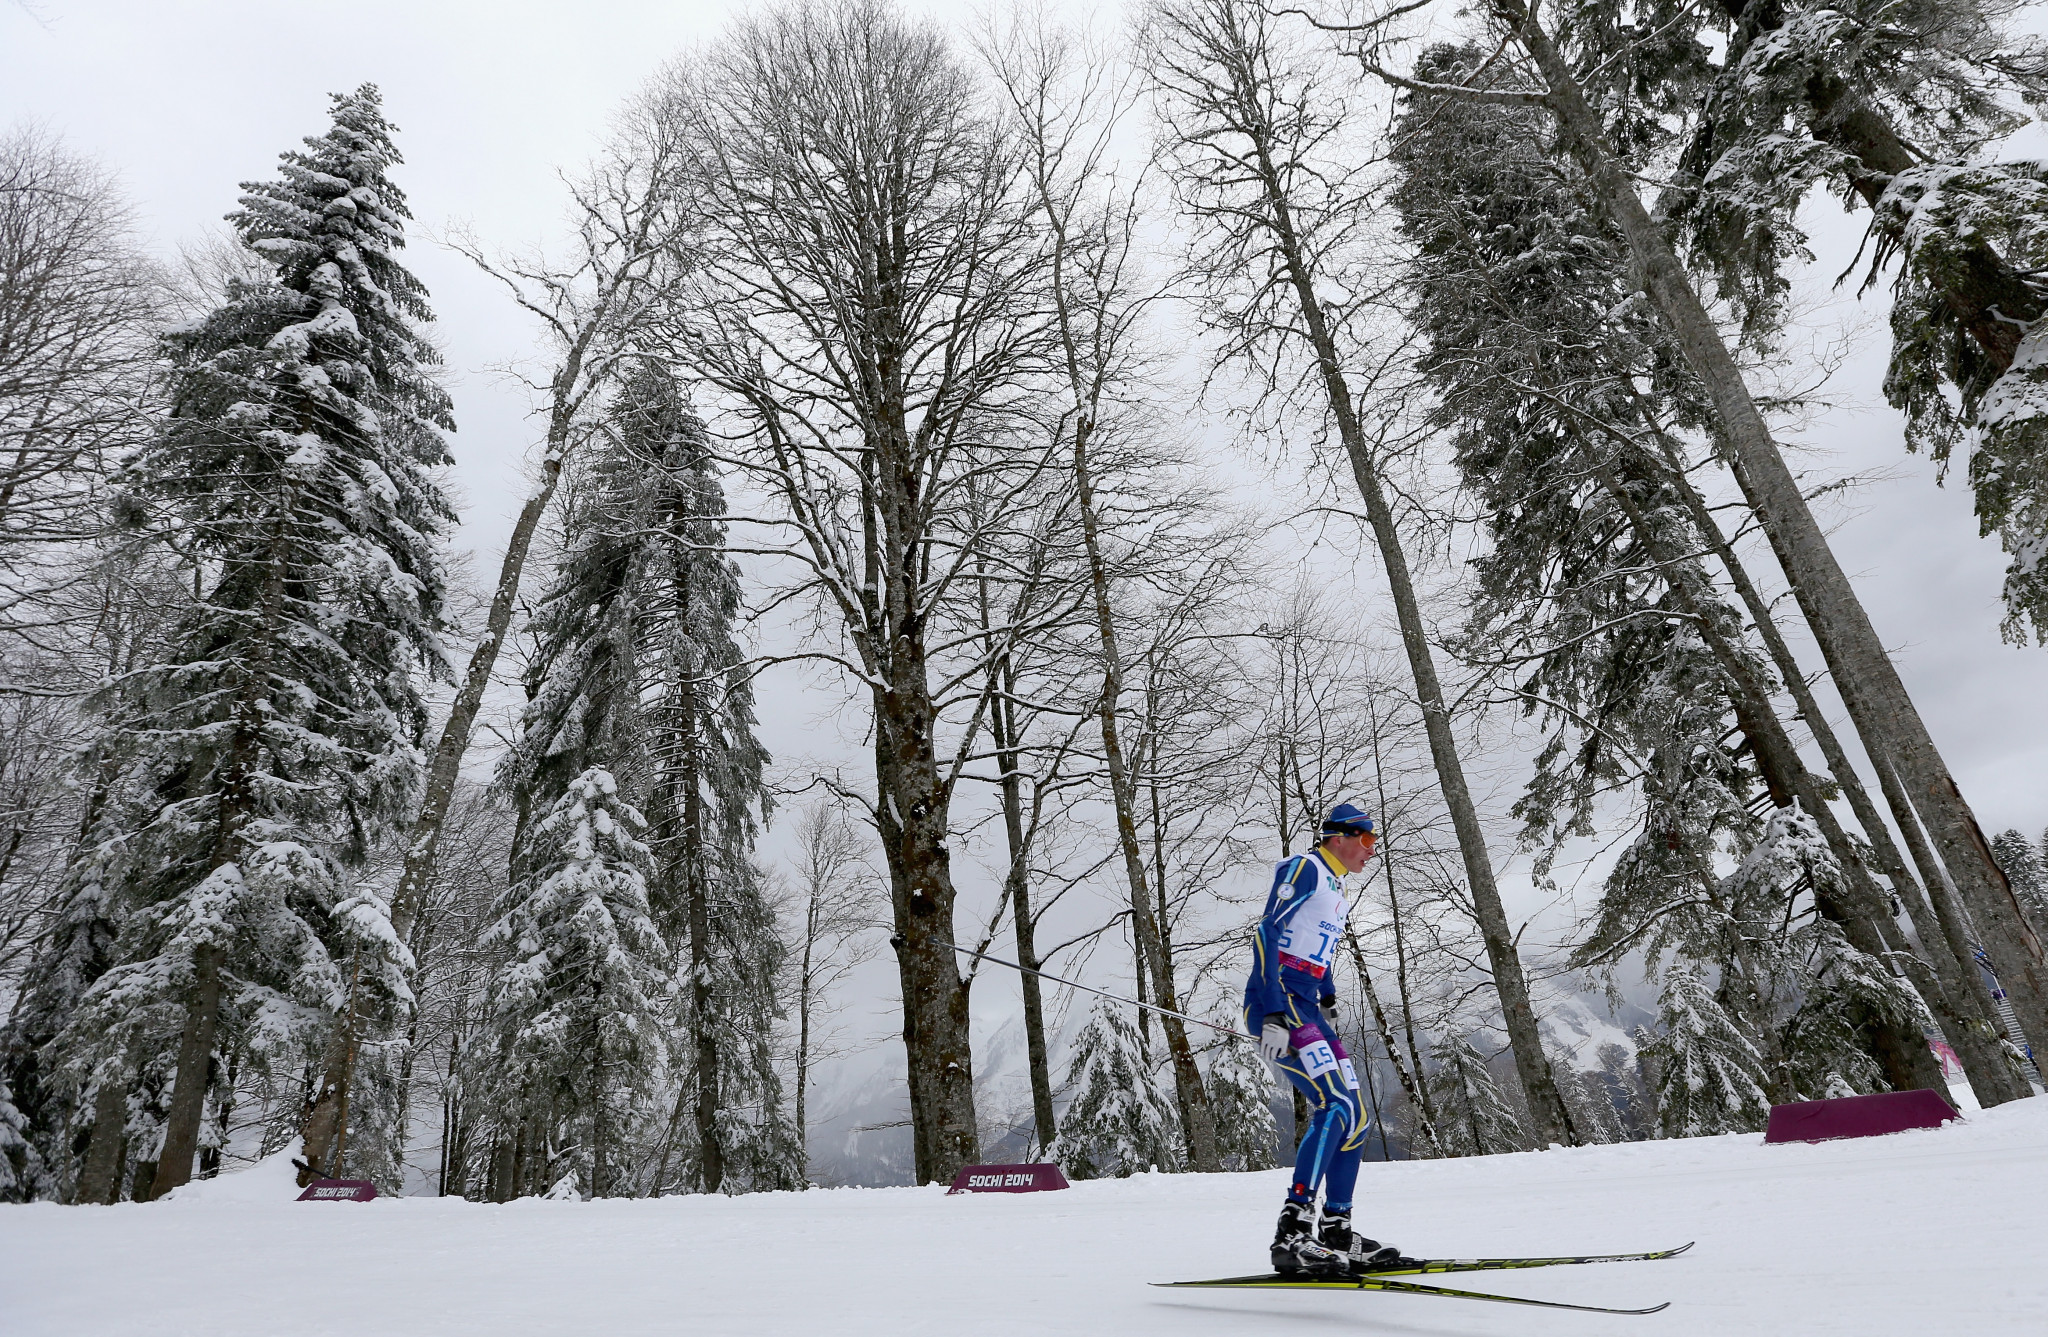 Ukrainian athletes dominate biathlon events at World Para Nordic Skiing World Cup